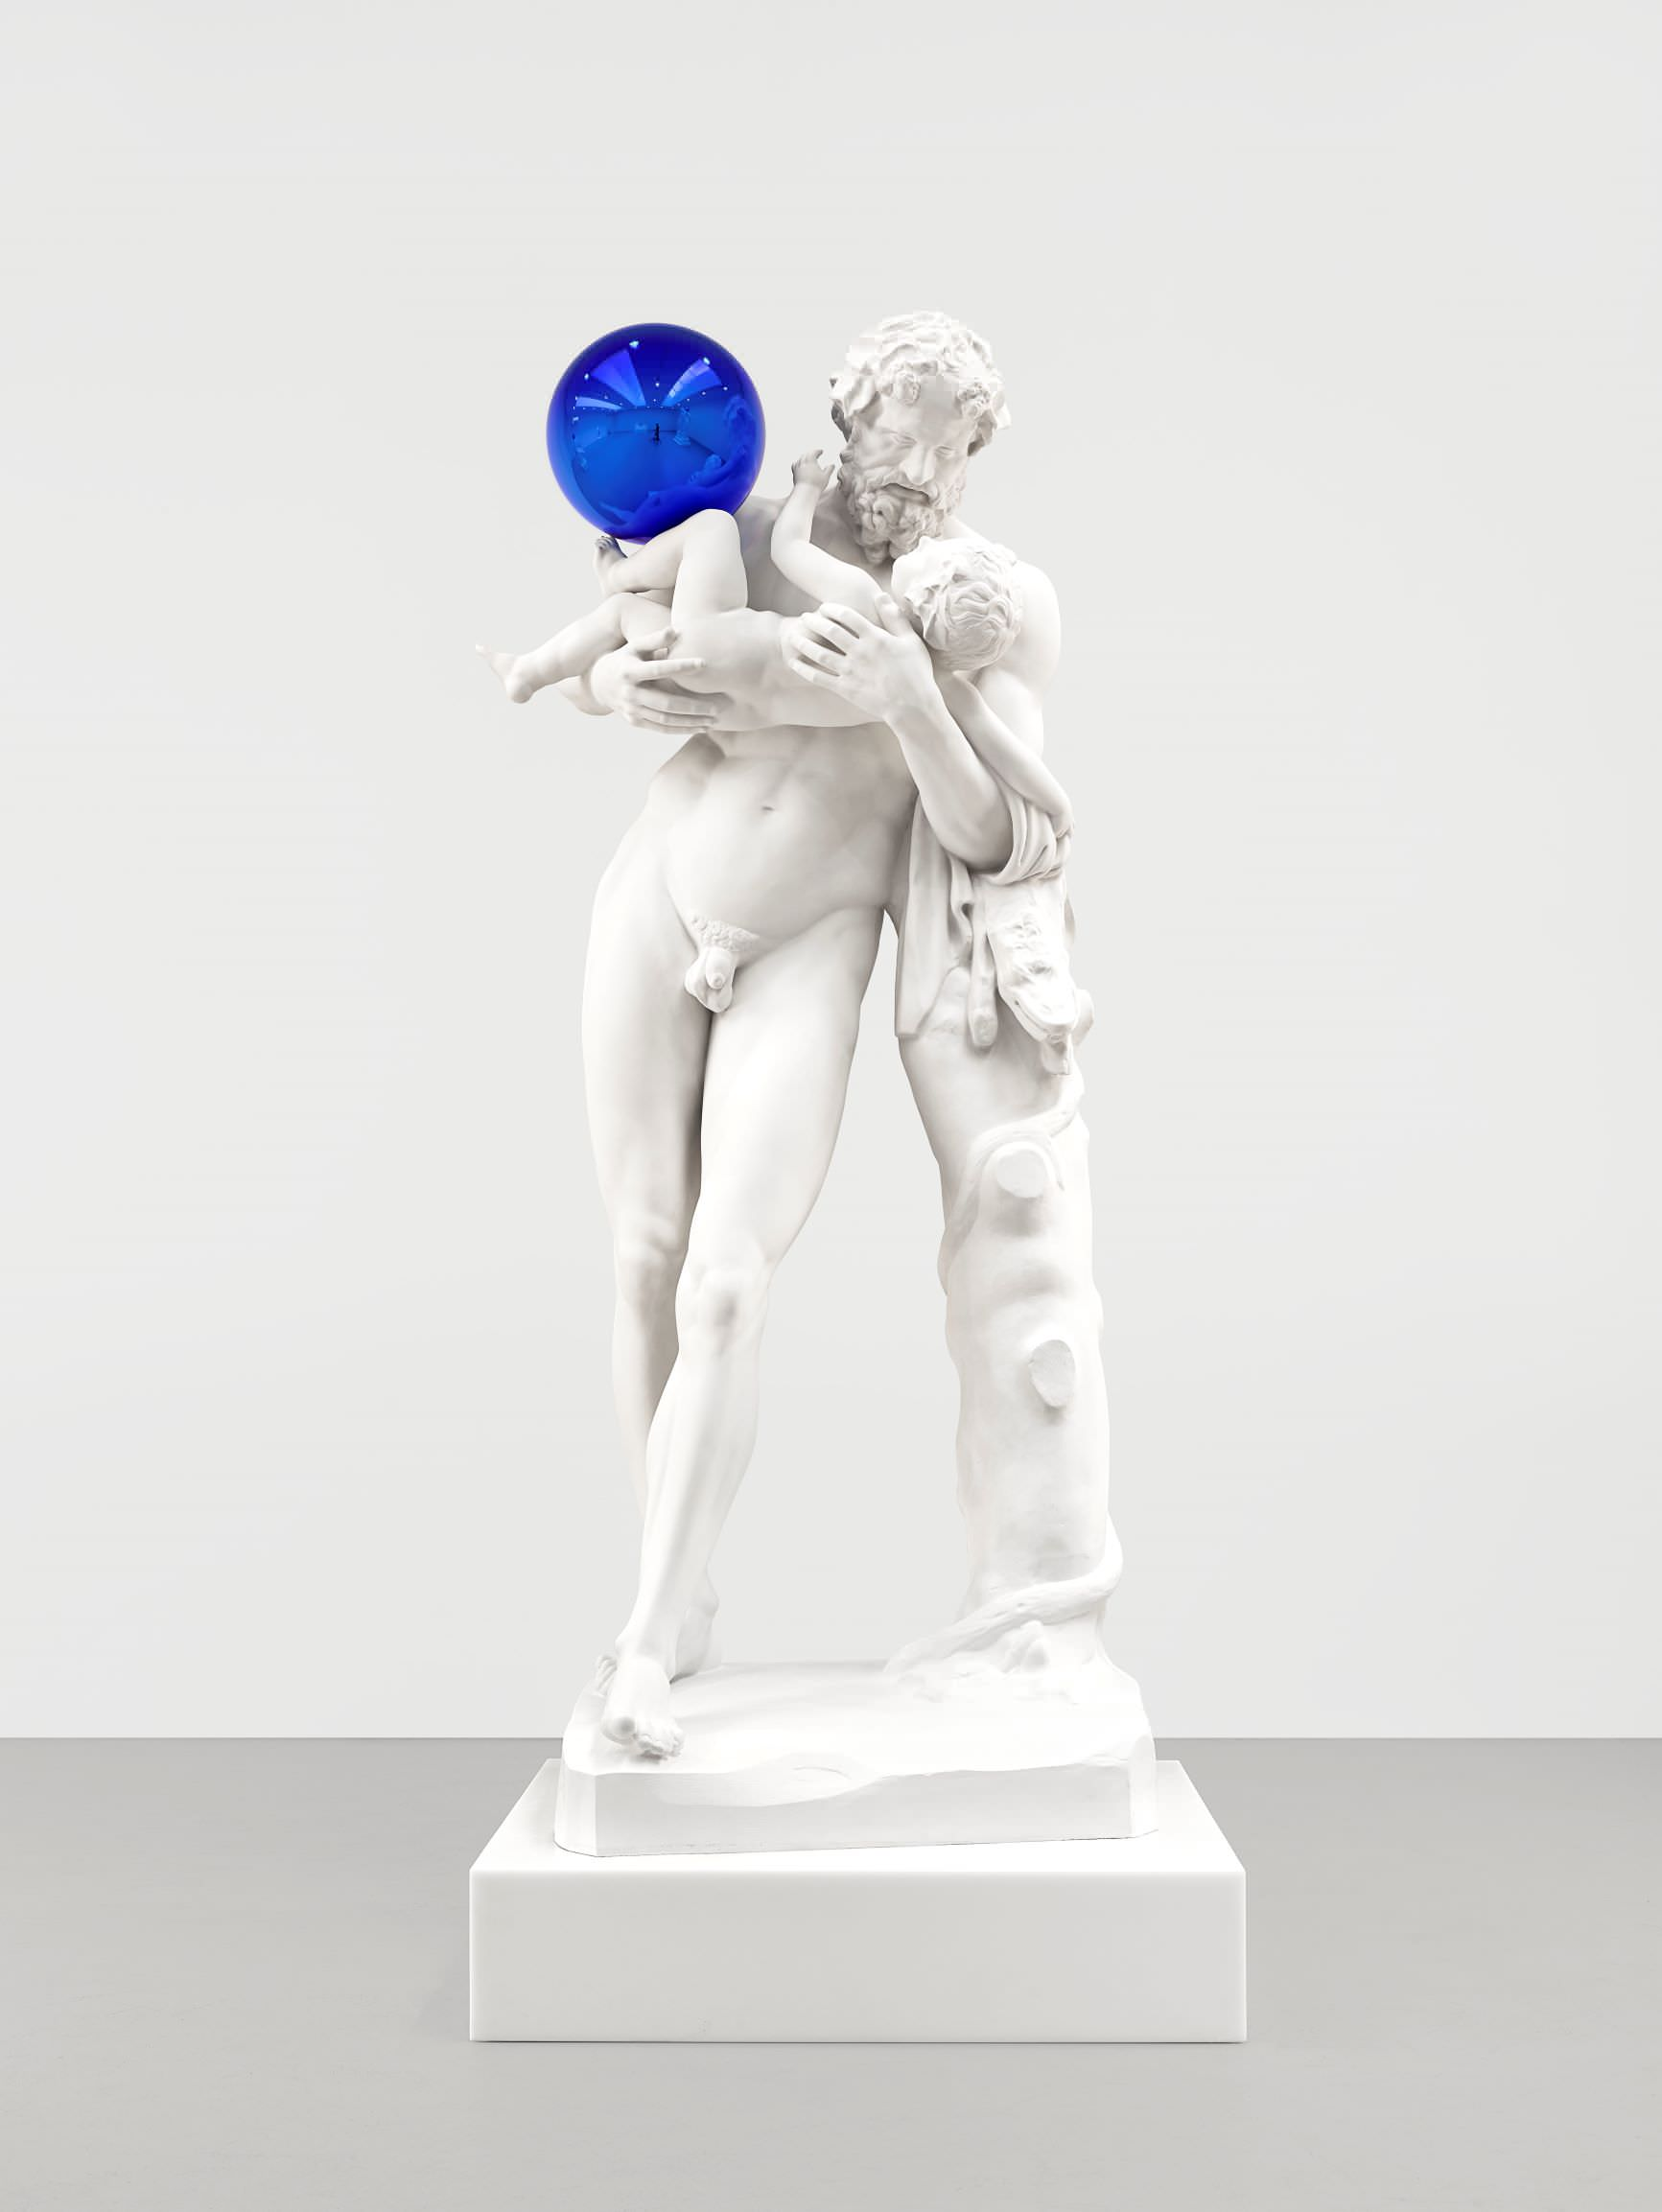 Jeff Koons (b. 1955); Gazing Ball (Silenus with Baby Dionysus); 2013; Plaster and glass; 202.2 x 86.4 x 85.4 cm; Artist's proof of an edition of 3 plus AP; Collection of the artist © Jeff Koons. Photo: Tom Powel Imaging. Courtesy Gagosian